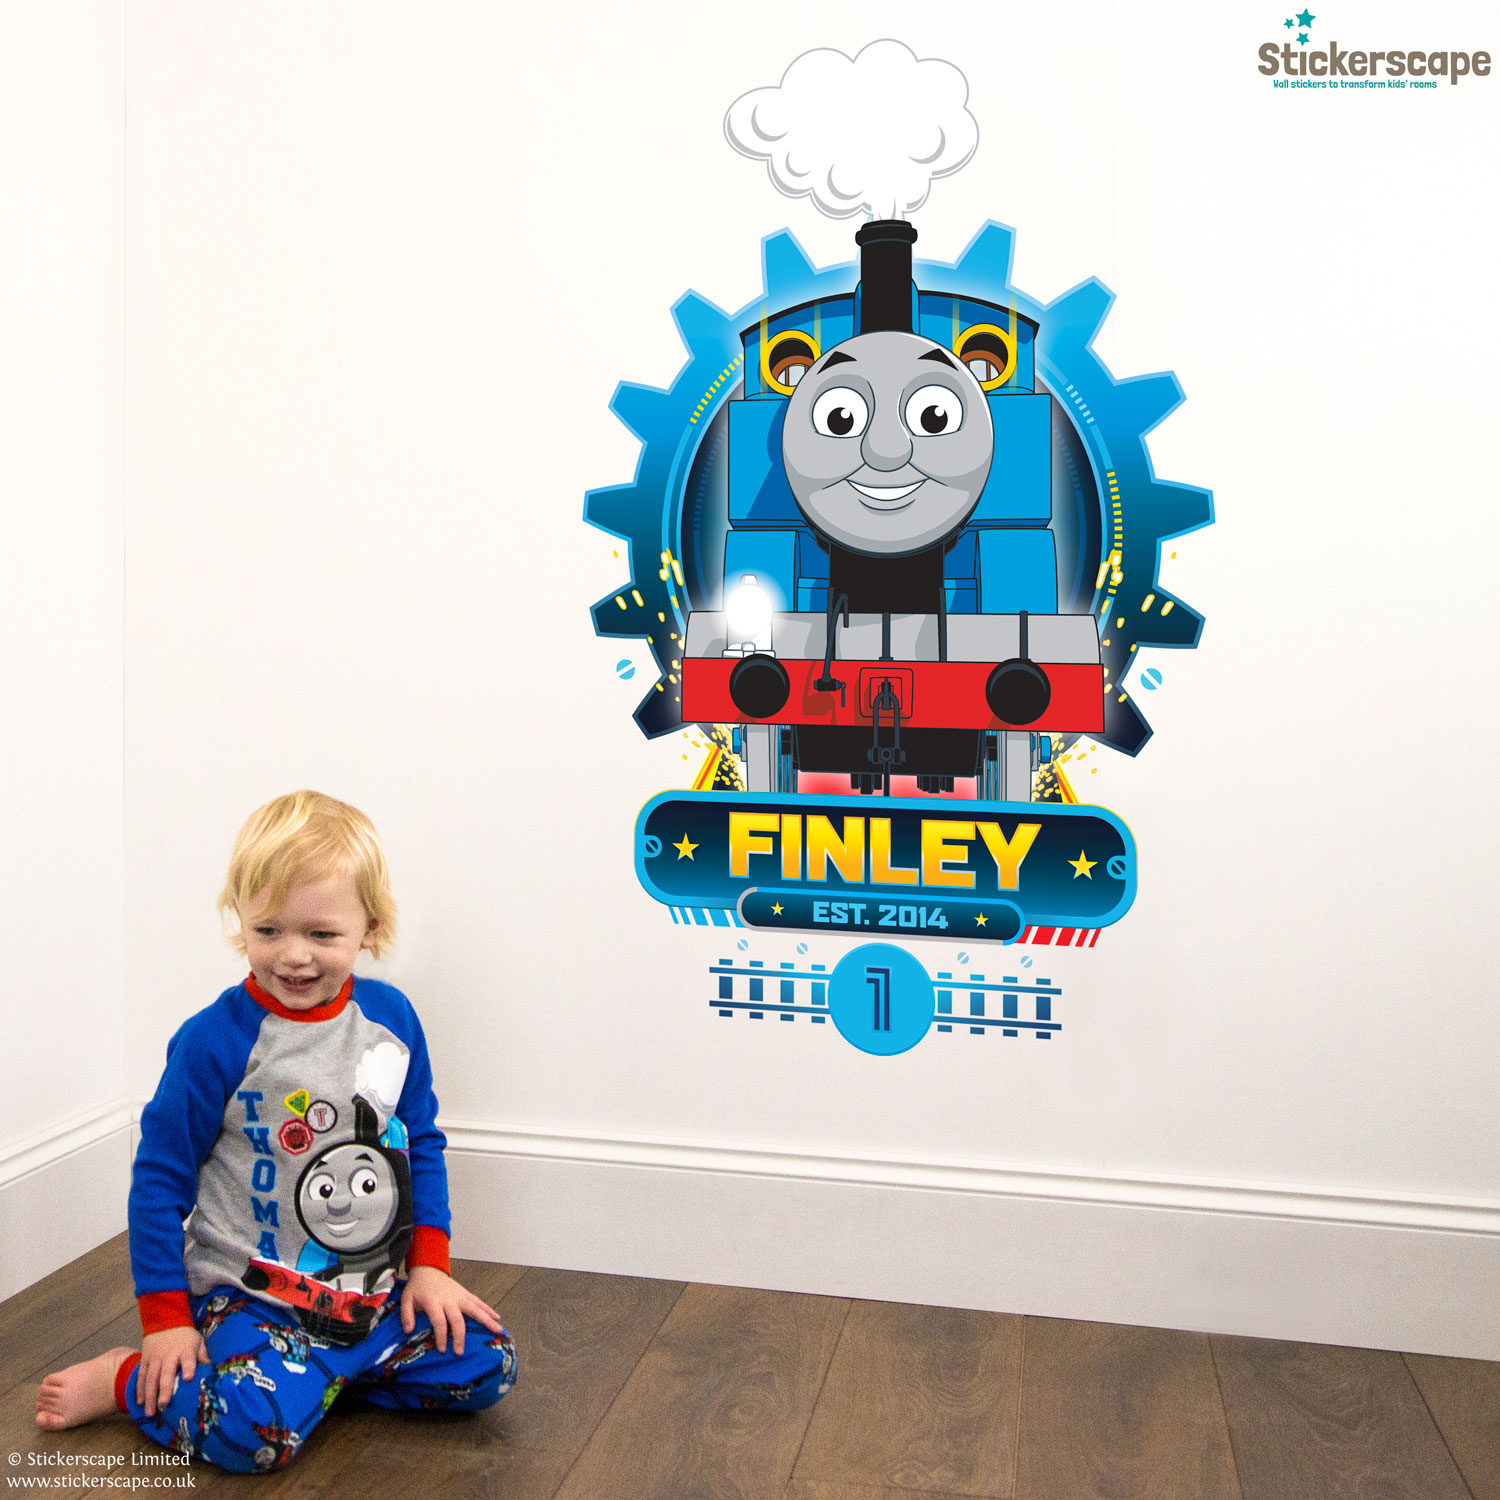 Thomas the tank engine wall stickers image collections home wall personalised thomas cog wall sticker stickerscape uk personalised thomas cog wall sticker extra large size thomas amipublicfo Images